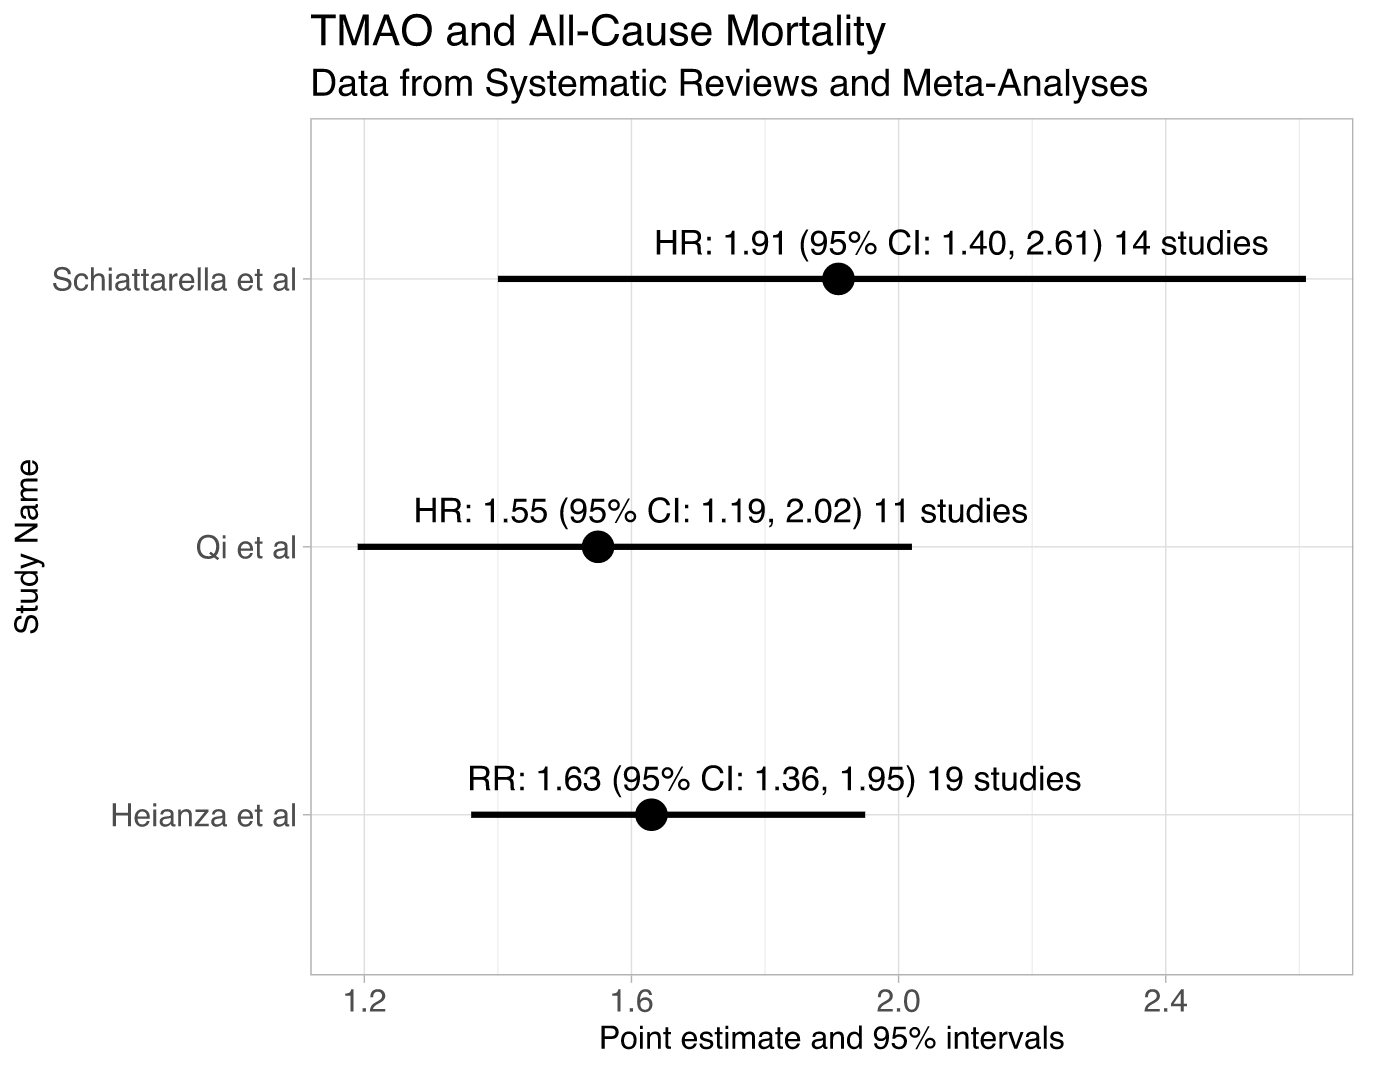 DIAGRAM 1: TMAO and All-Cause Mortality, Data from Systematic Reviews and Meta-Analysis.